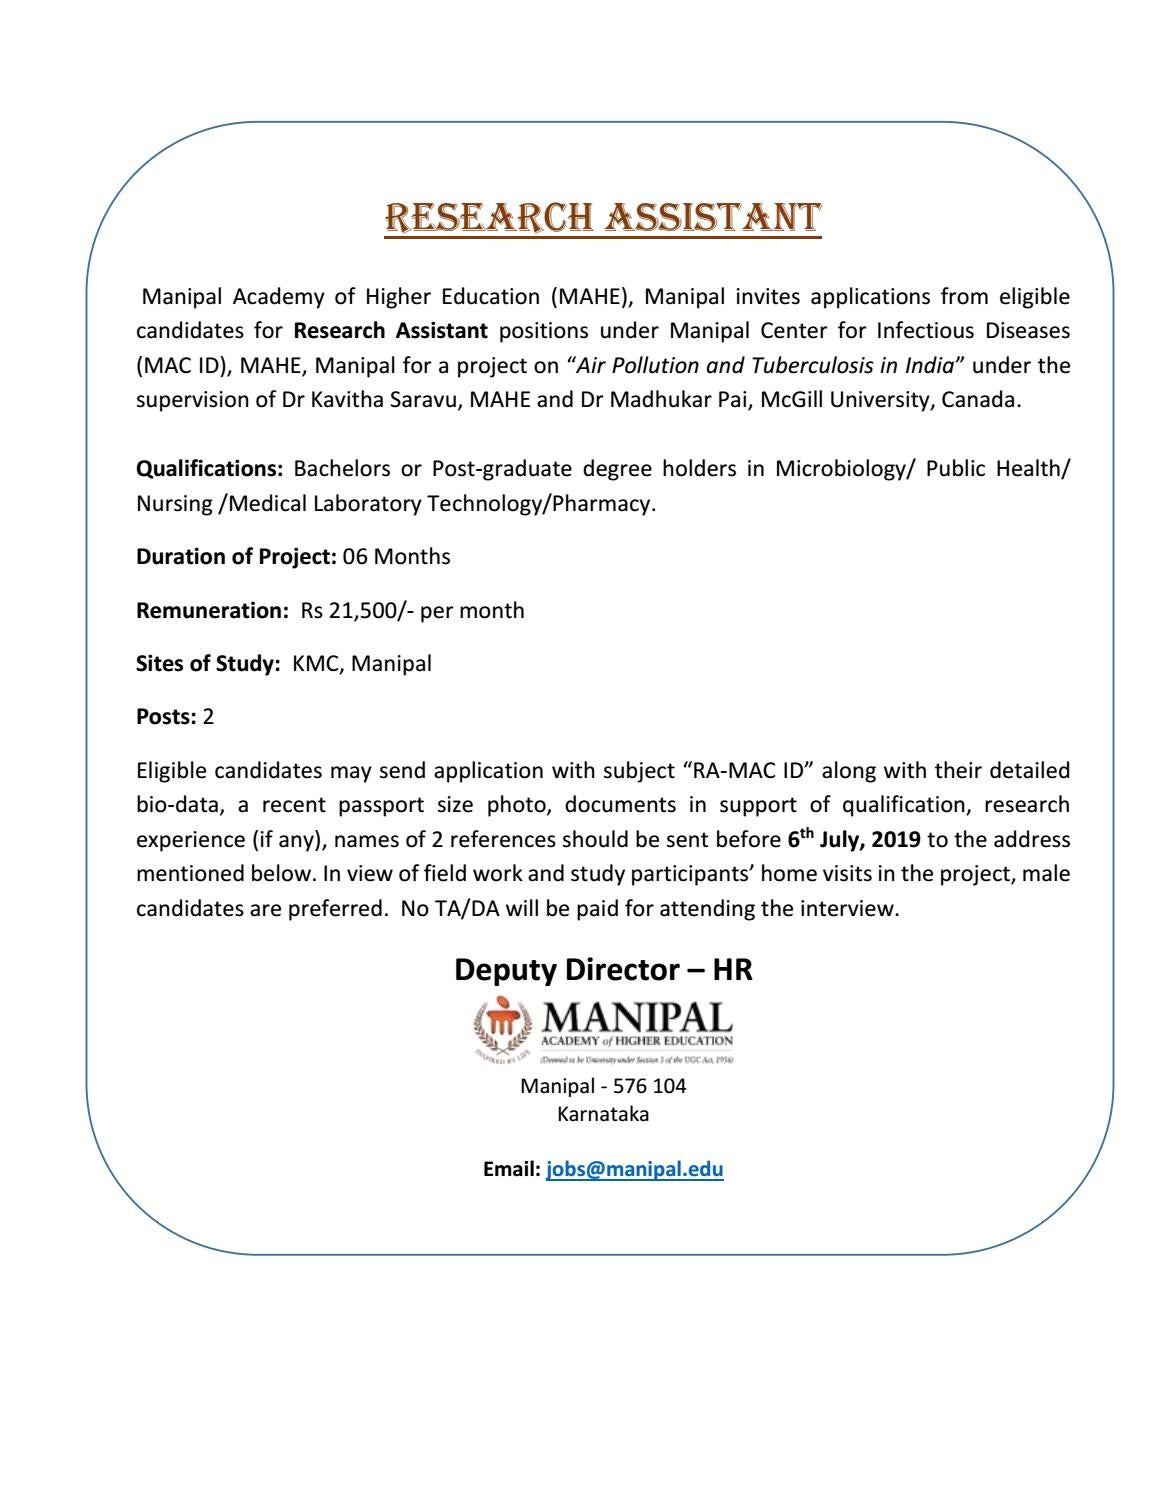 MAHE Manipal Research Assistant Jobs - Microbiology Apply by